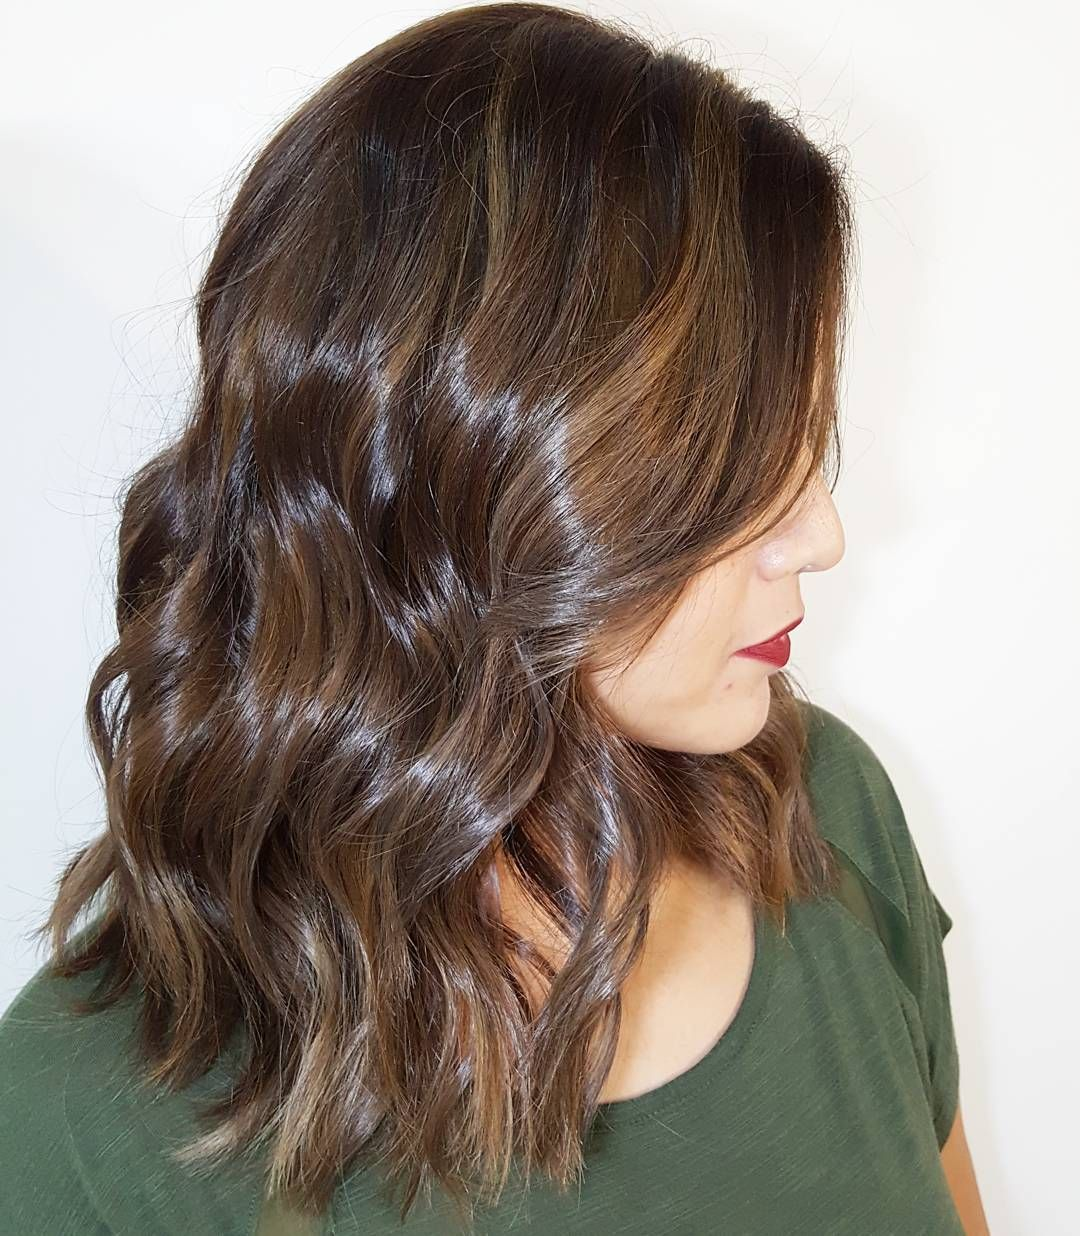 30 Stunning Digital Perm Hairstyles Perfect Waves With A Digi Perm Check More At Http Hairstylezz Com Best Digi Permed Hairstyles Digital Perm Hair Styles